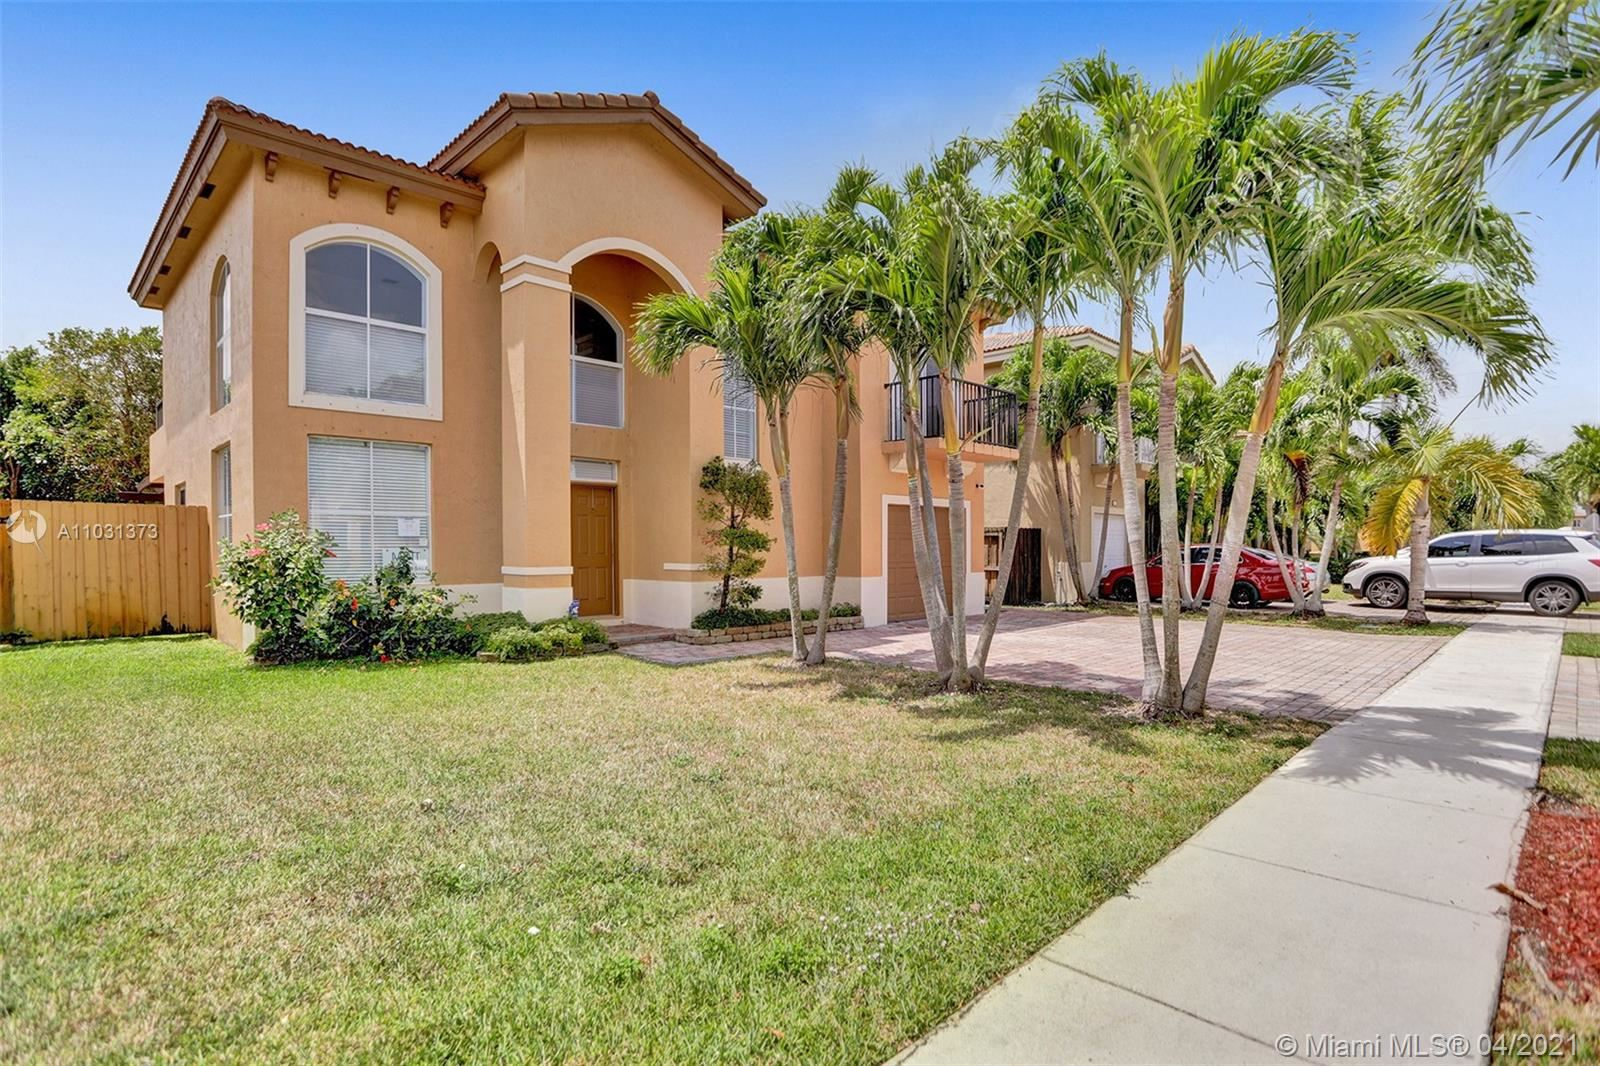 4180 NE 16th St, Homestead, FL 33033 - #: A11031373